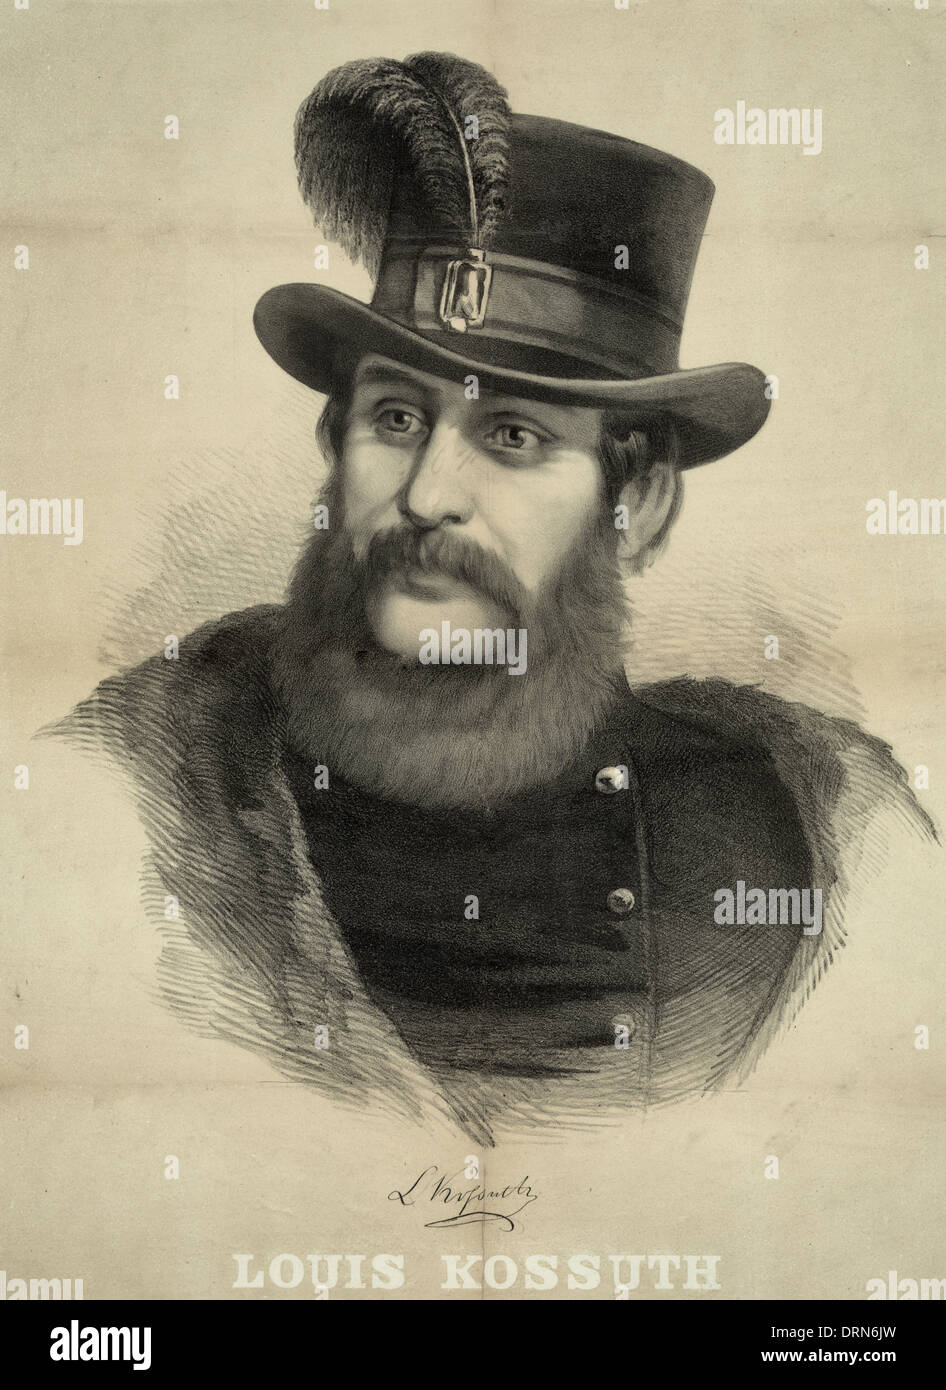 Louis Kossuth - a Hungarian lawyer, journalist, politician and Regent-President of the Kingdom of Hungary during the revolution of 1848, January 1852 - Stock Image